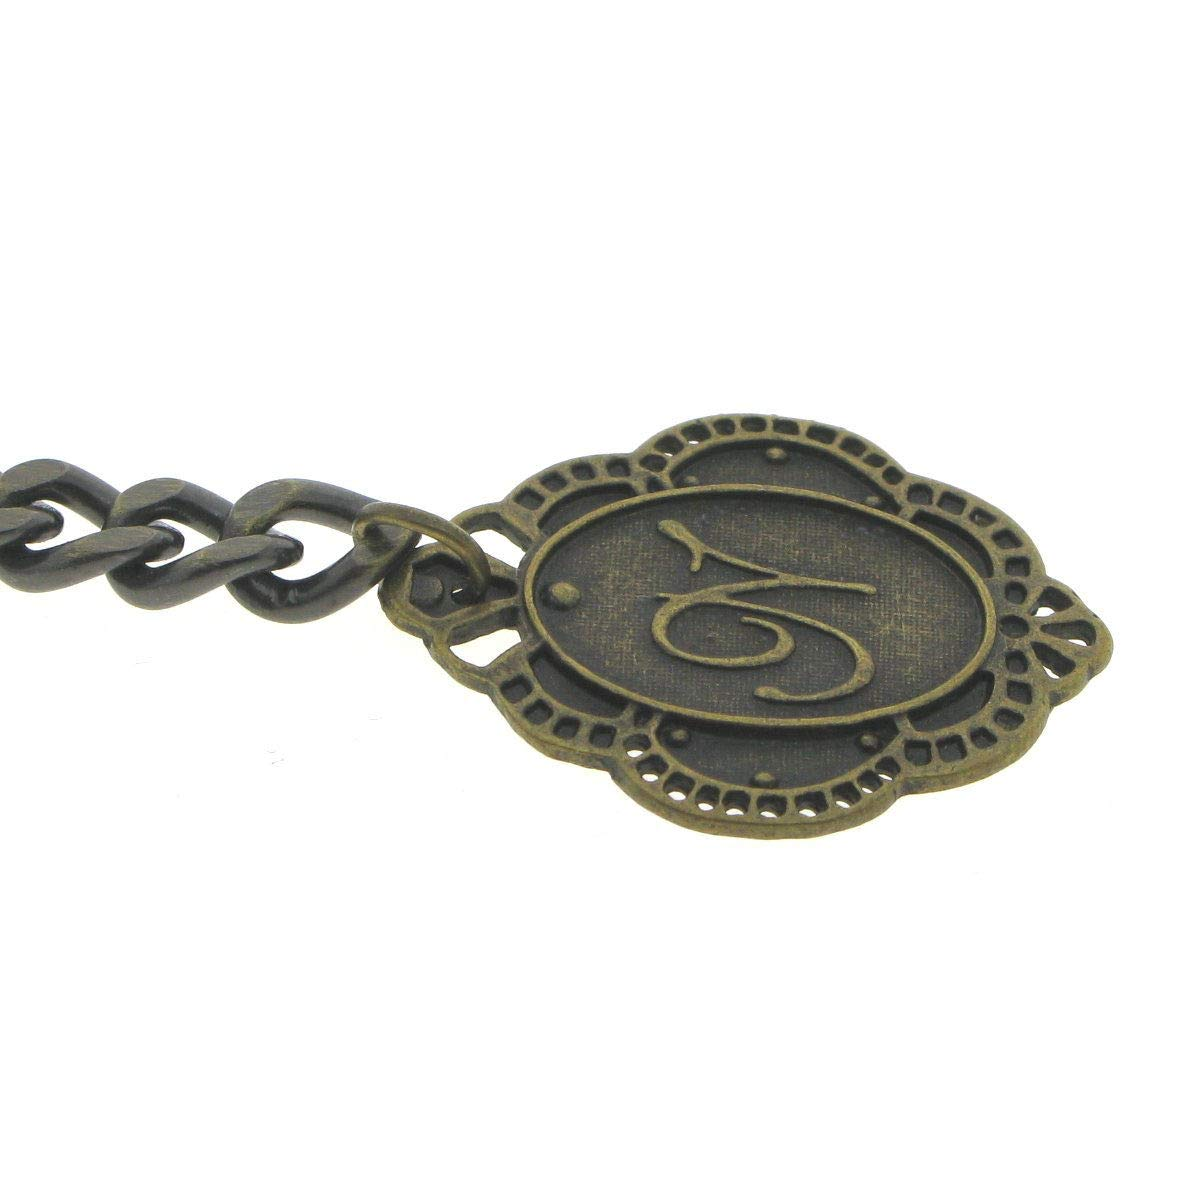 Albert Chain Pocket Watch Curb Link Chain Antique Brass Color + Alphabet N Initial Letter Fob T Bar AC84 by watchvshop (Image #6)